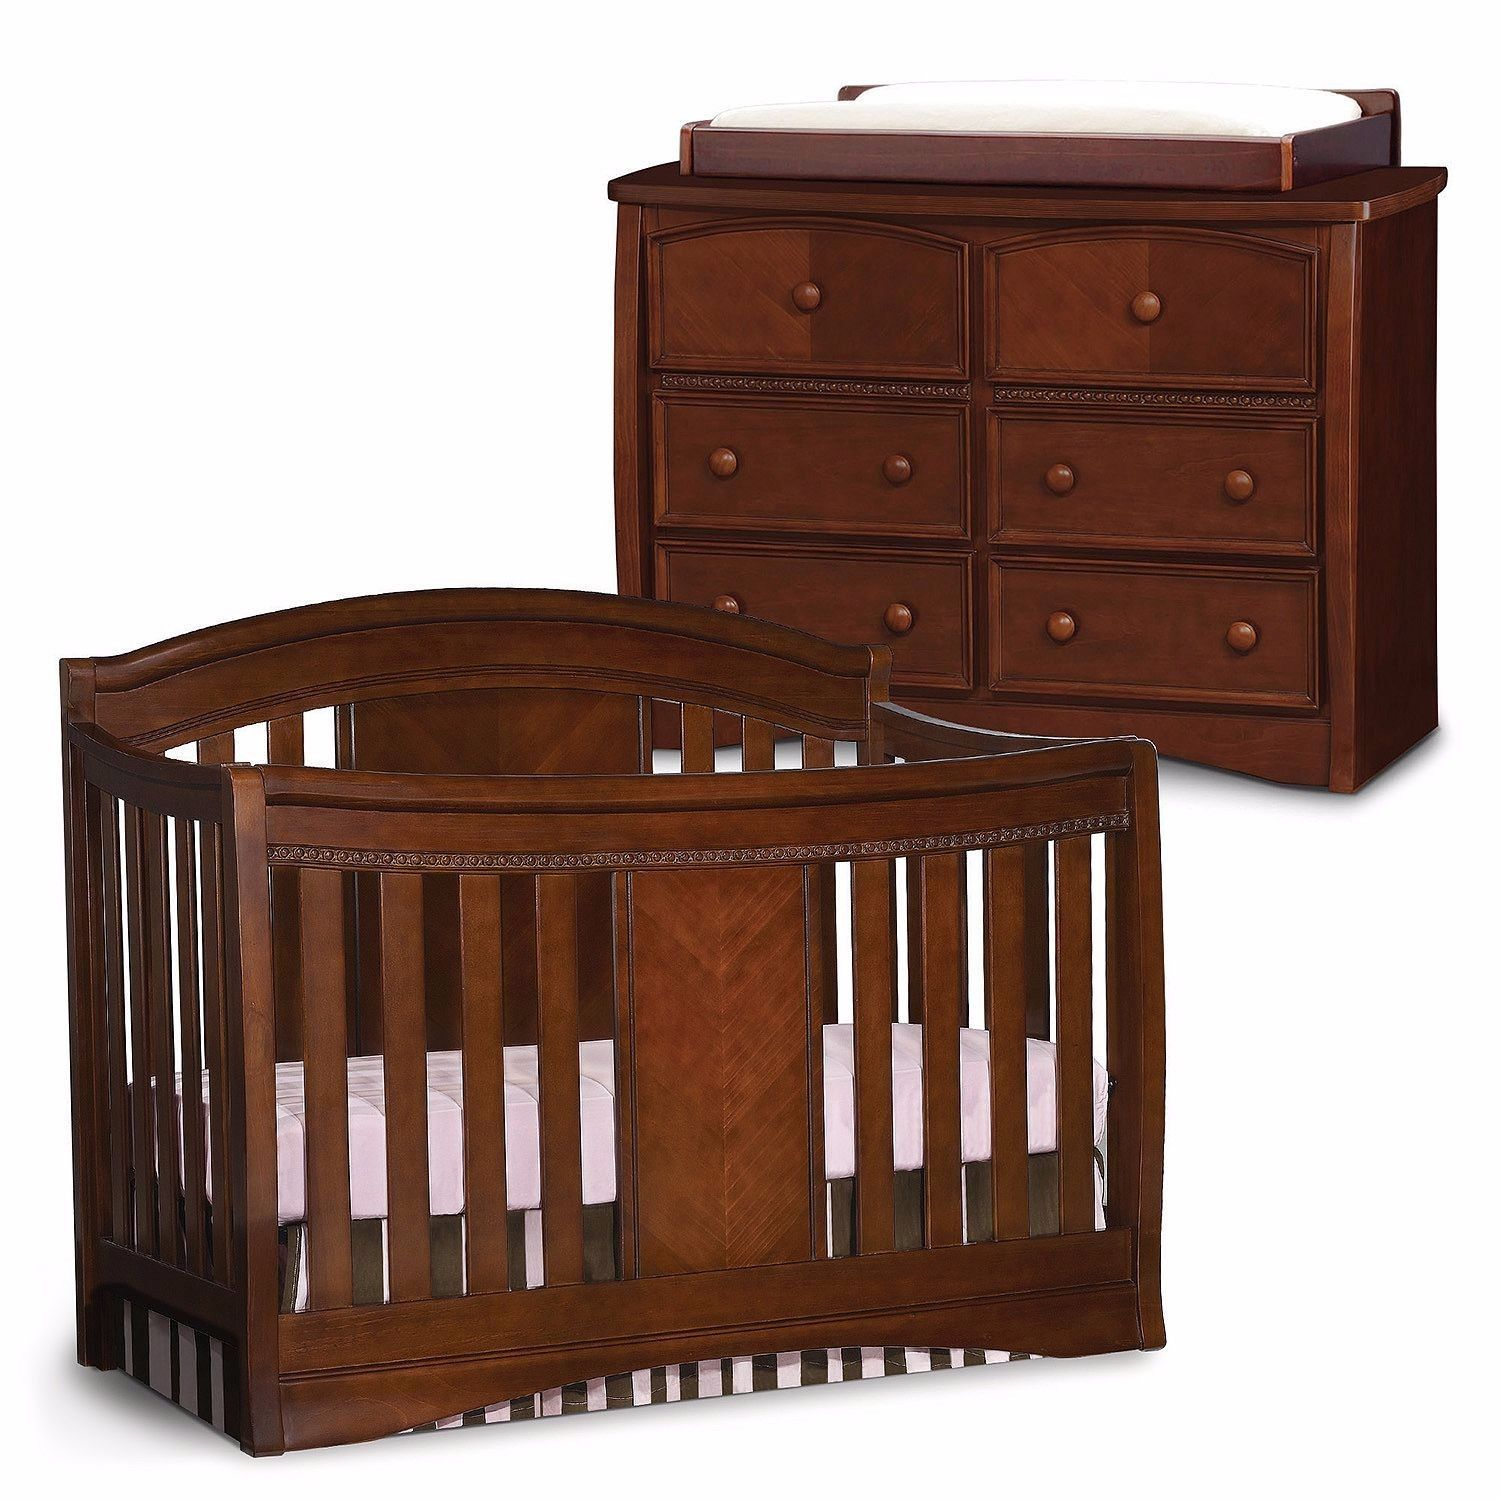 Simmons Kids Elite Nursery Set Espresso 4 in 1 Crib Dresser Changing ...